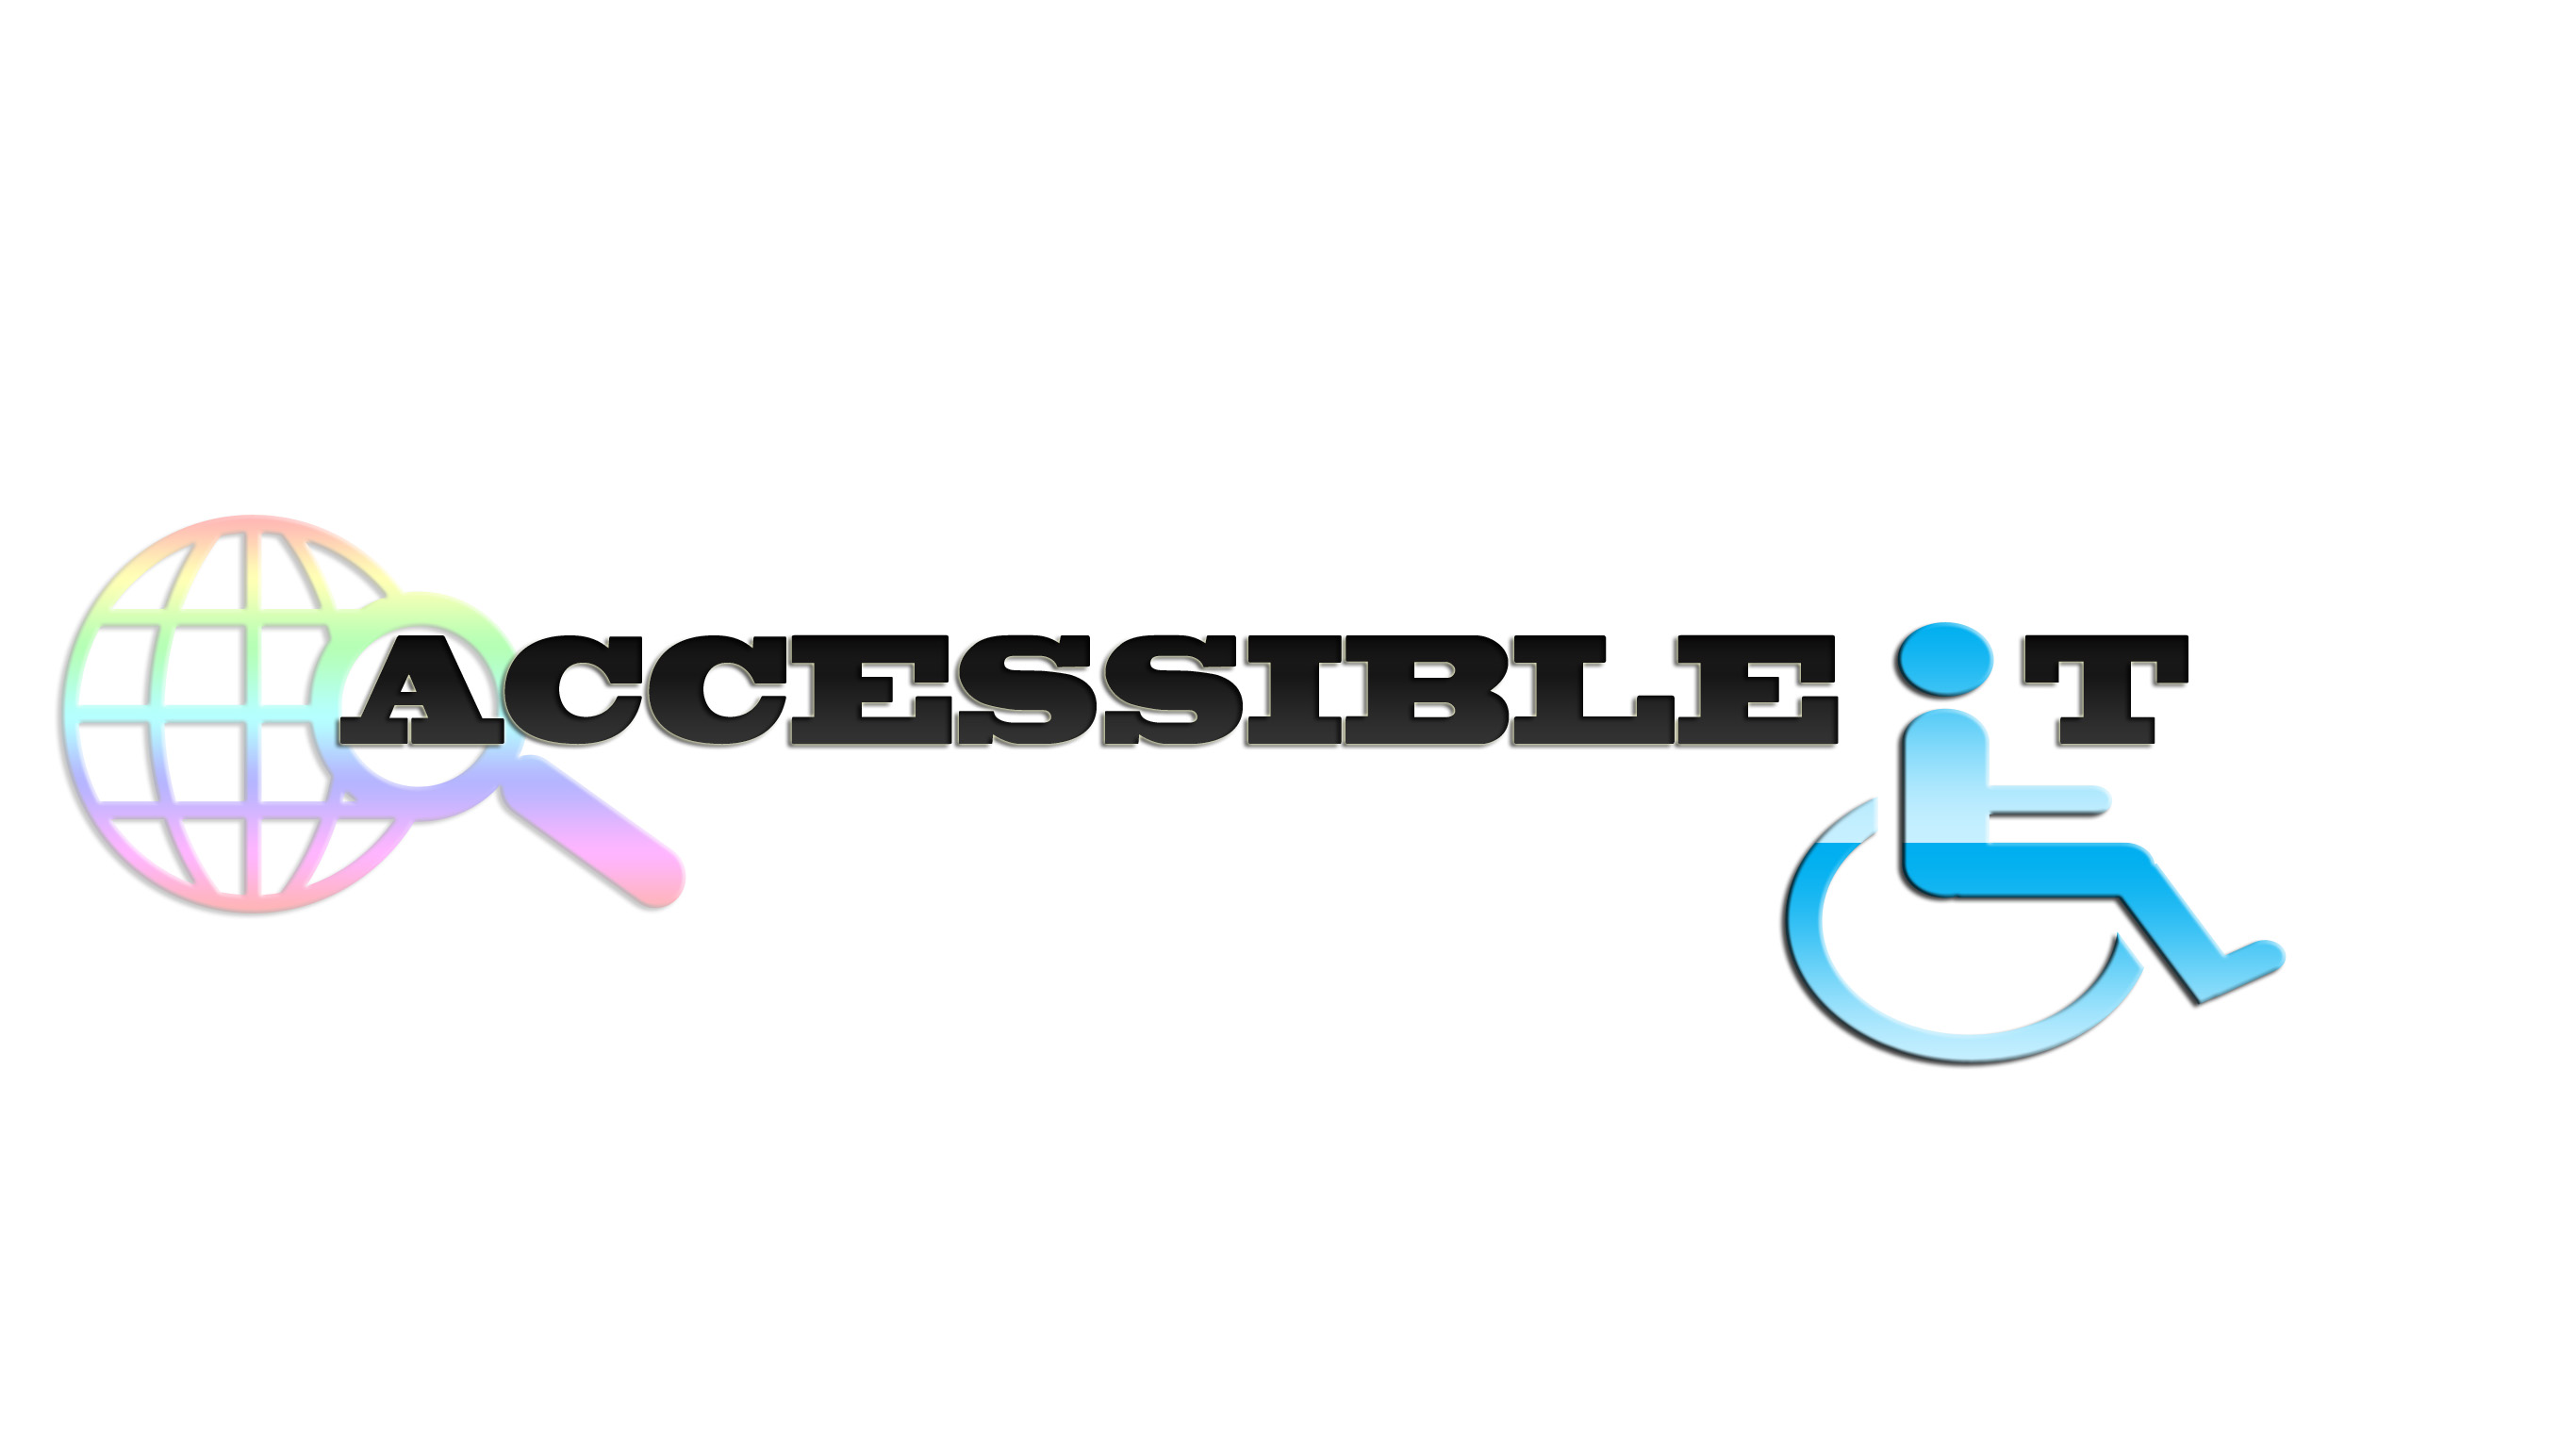 Logo Design by Brian Christiansen - Entry No. 120 in the Logo Design Contest Logo Design Needed for Exciting New Company Accessible IT.